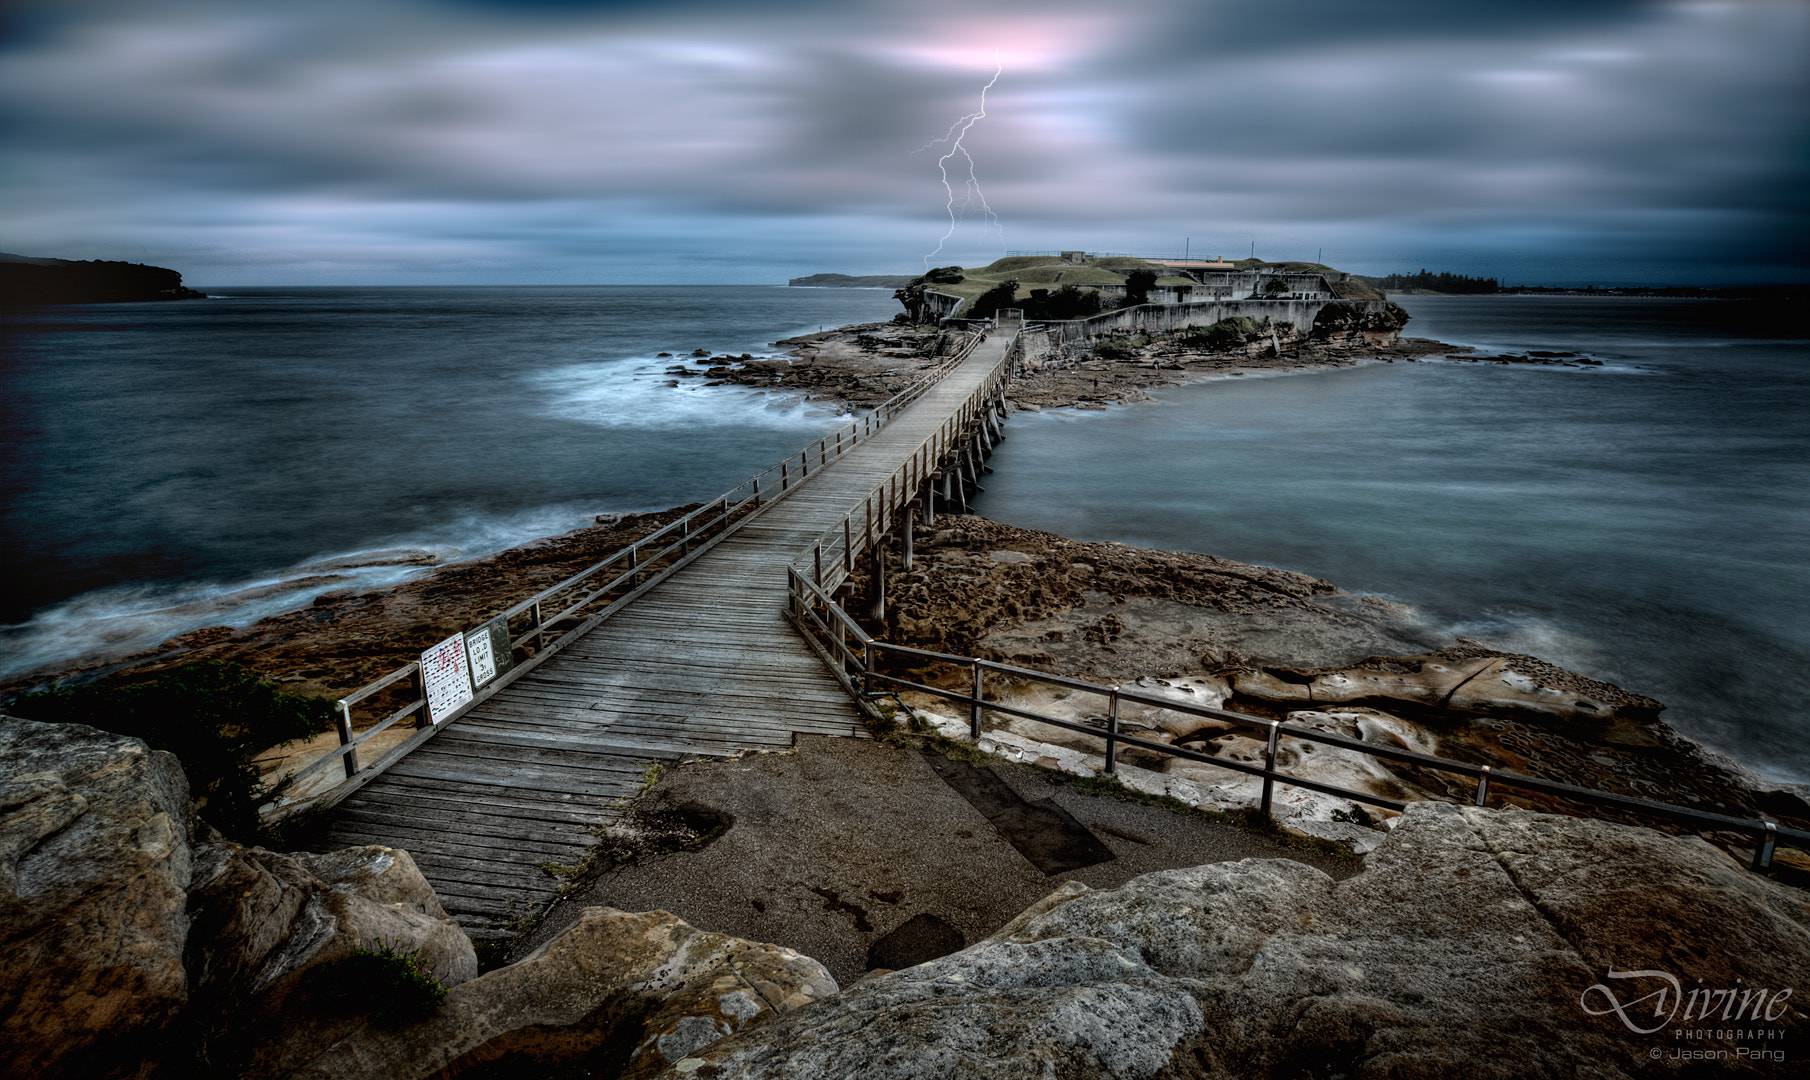 Photograph Bare Island by Jason Pang on 500px